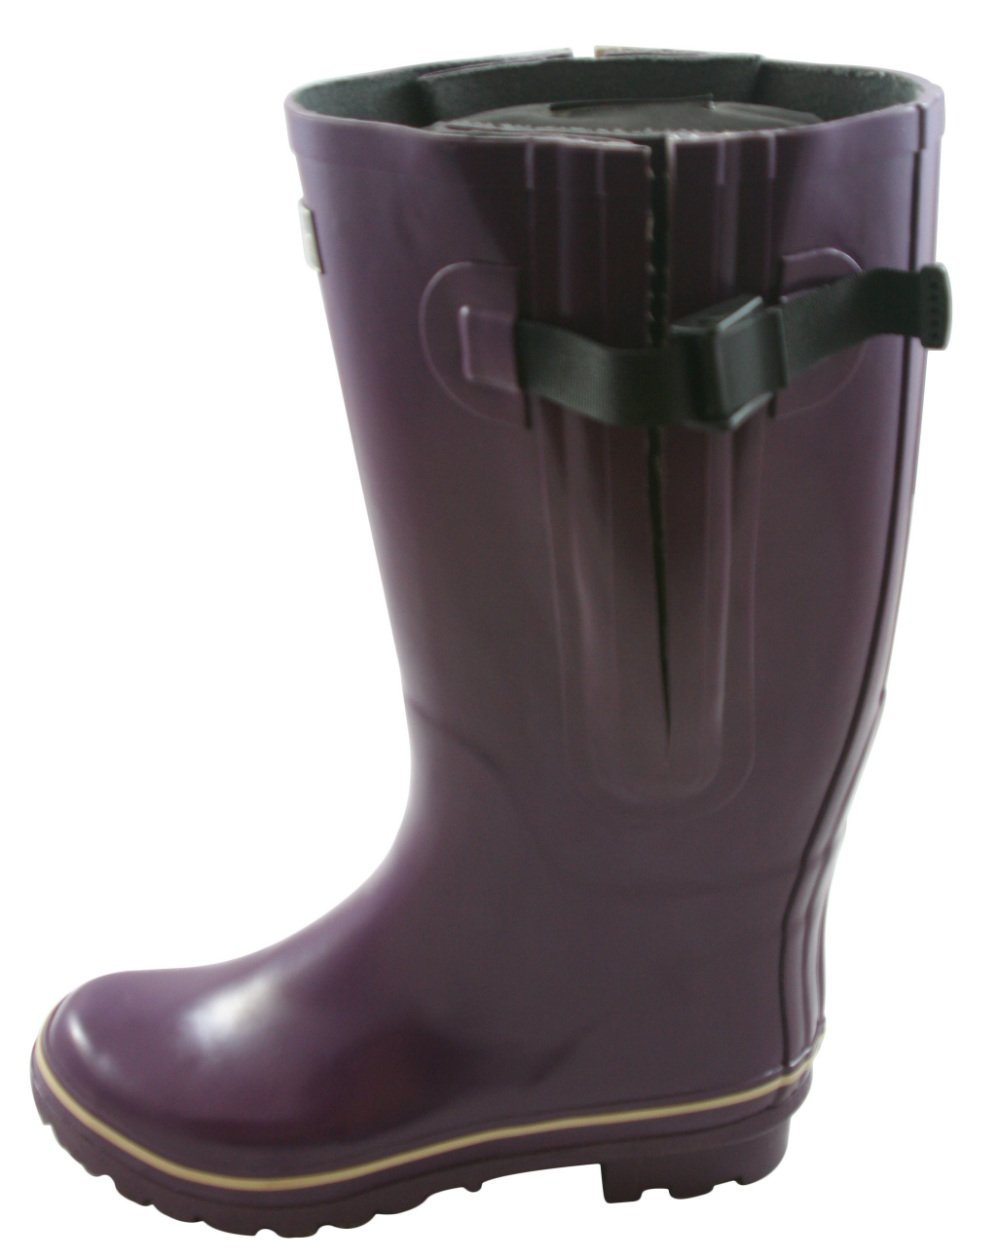 Jileon Extra Wide Calf Rubber Rain Boots for Women-Widest Fit Boots in The US-up to 21 inch Calves-Wide in The Foot and Ankle B00OCV4X6A 6 E (Extra Wide) US Purple